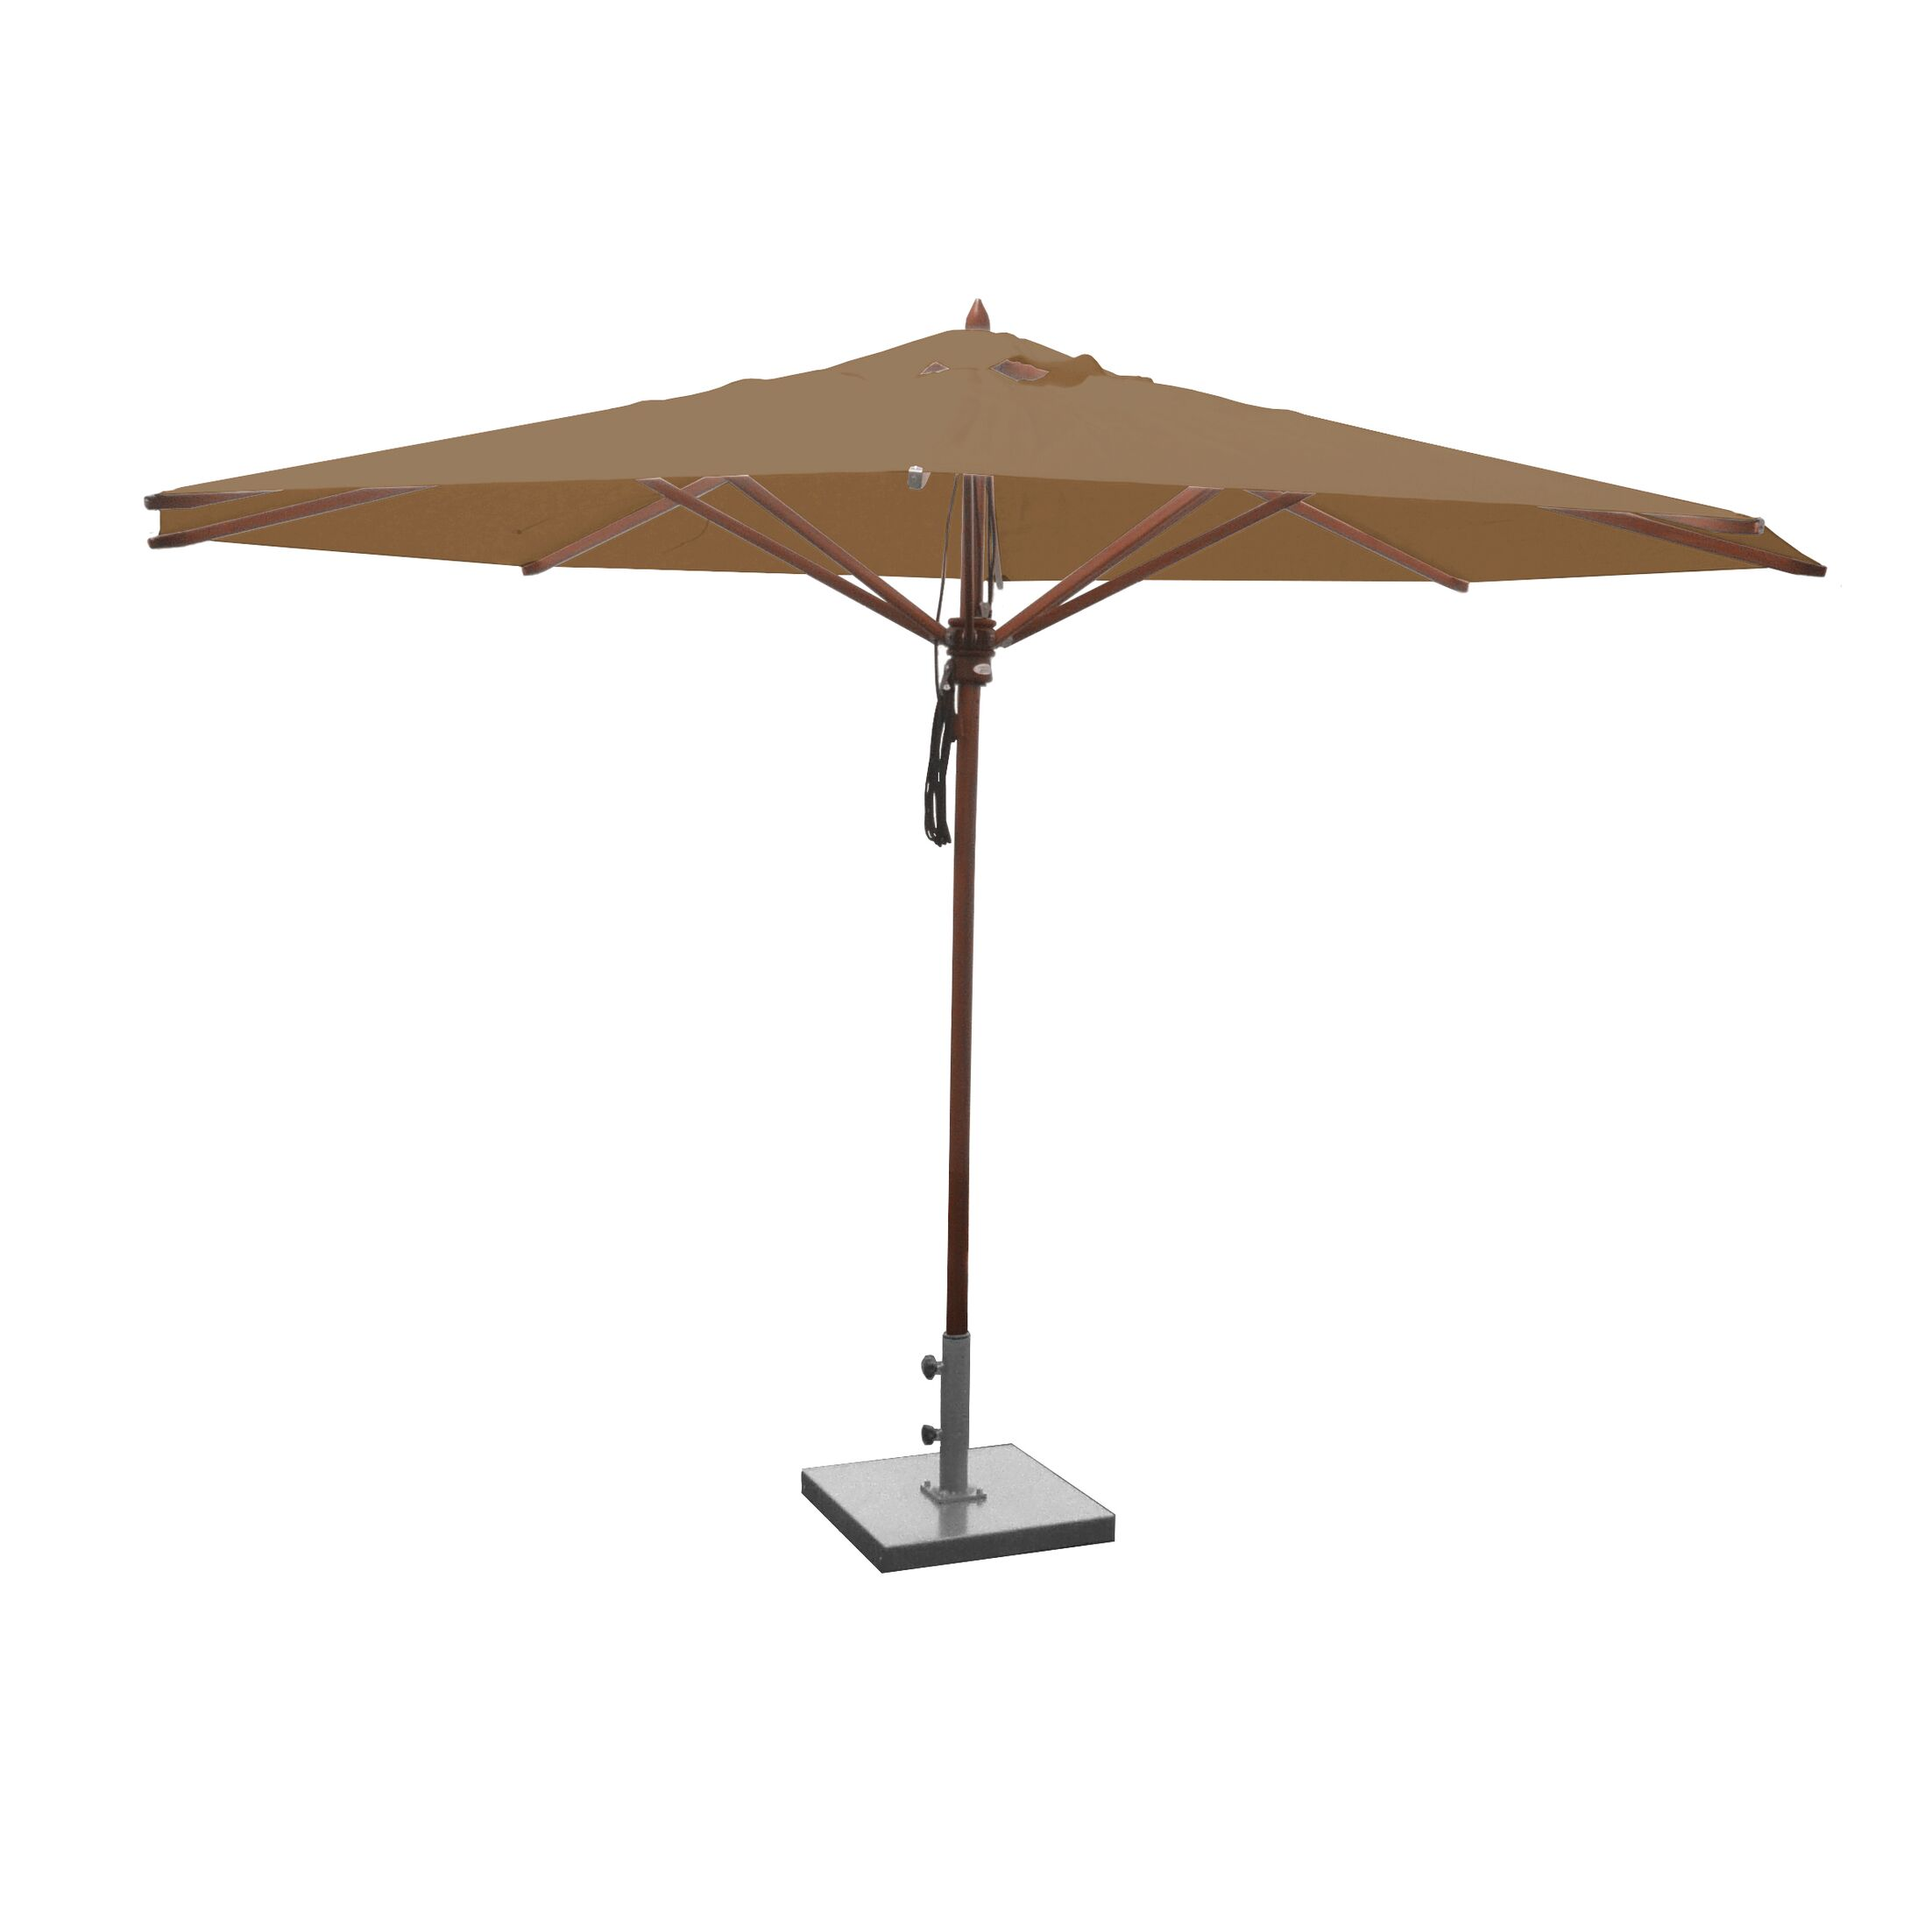 Samuel 13' Market Umbrella Fabric: Beige